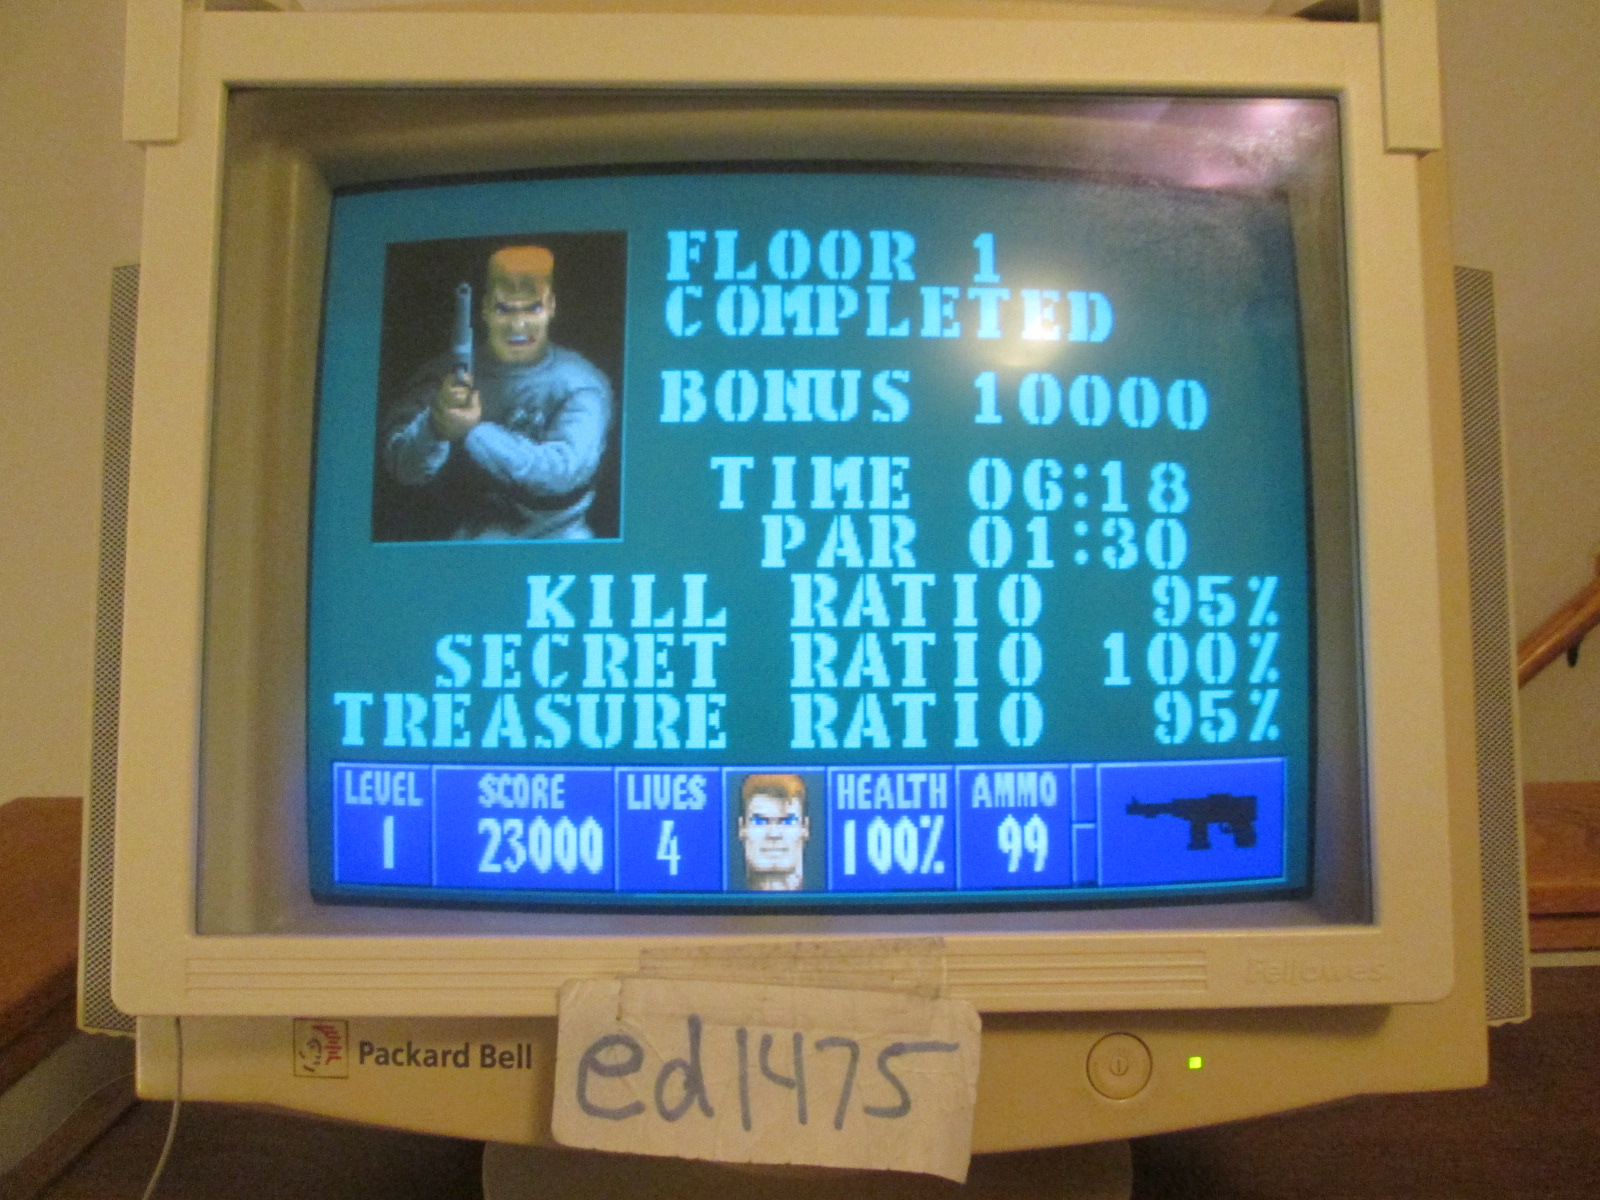 ed1475: Wolfenstein 3-D [Default settings] (PC) 31,300 points on 2016-10-25 23:13:59